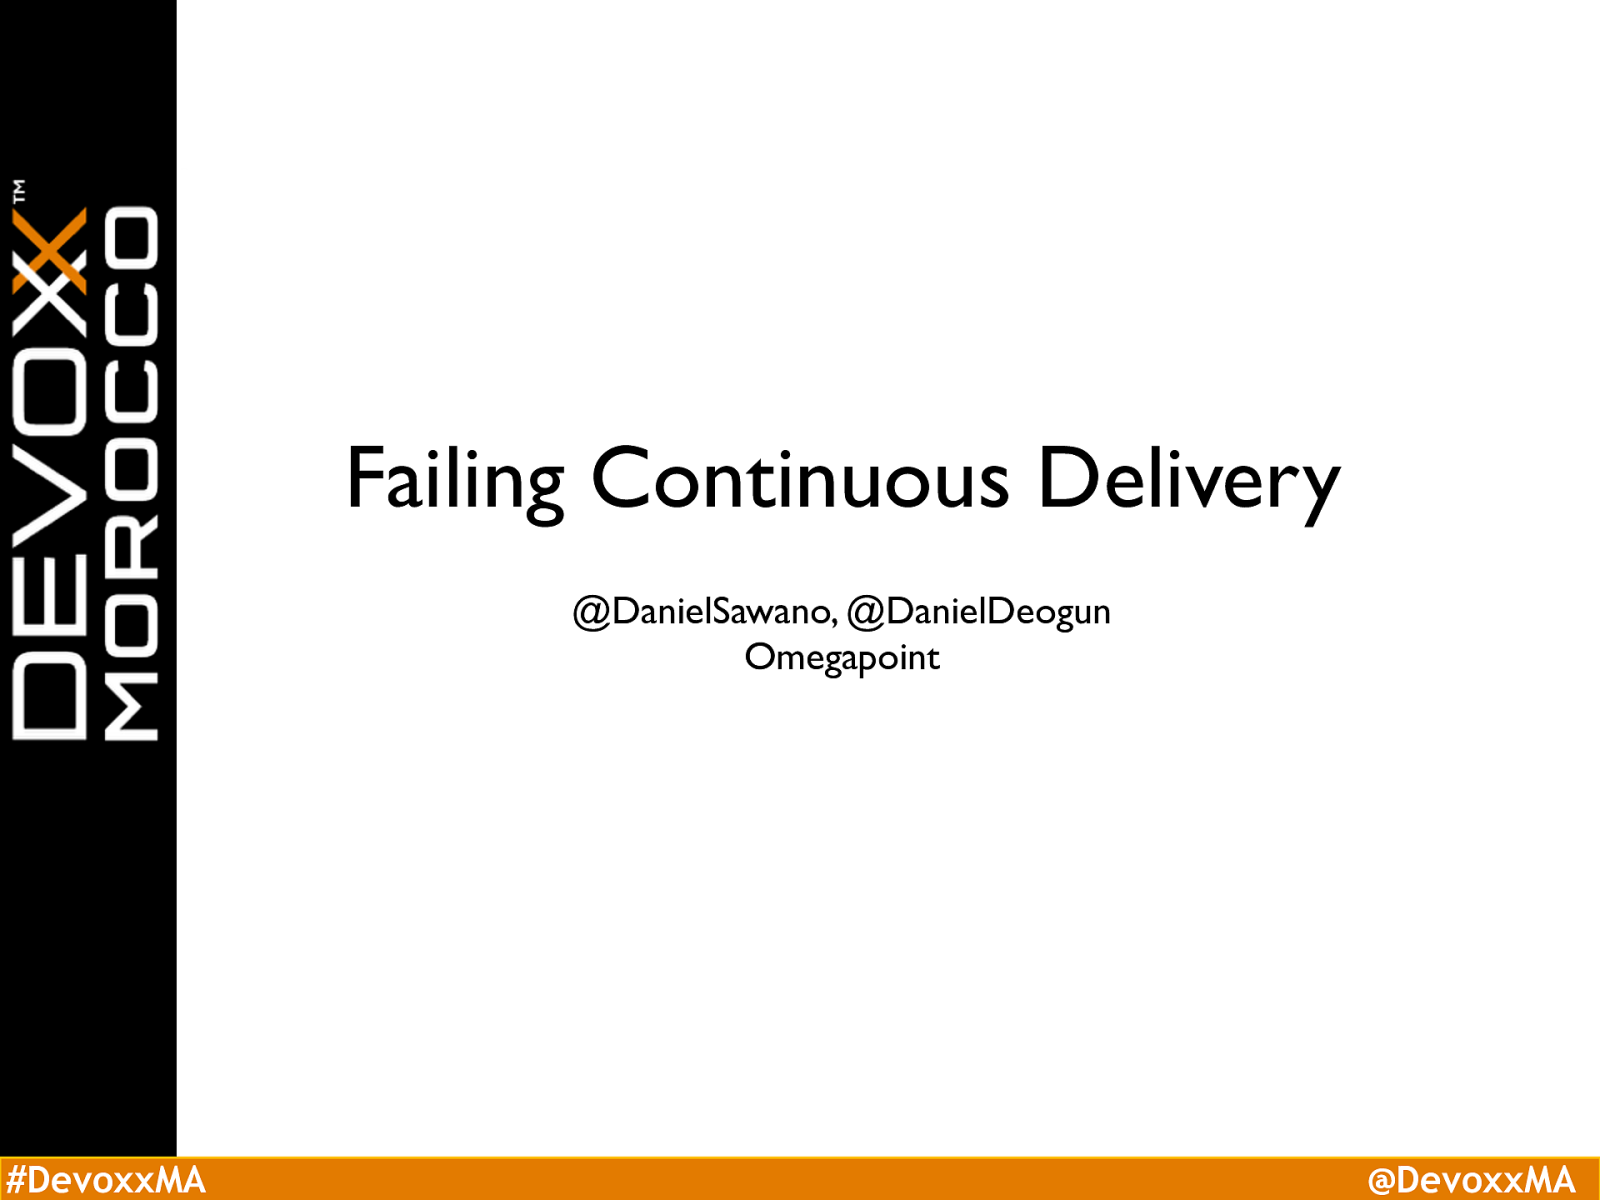 Failing Continuous Delivery